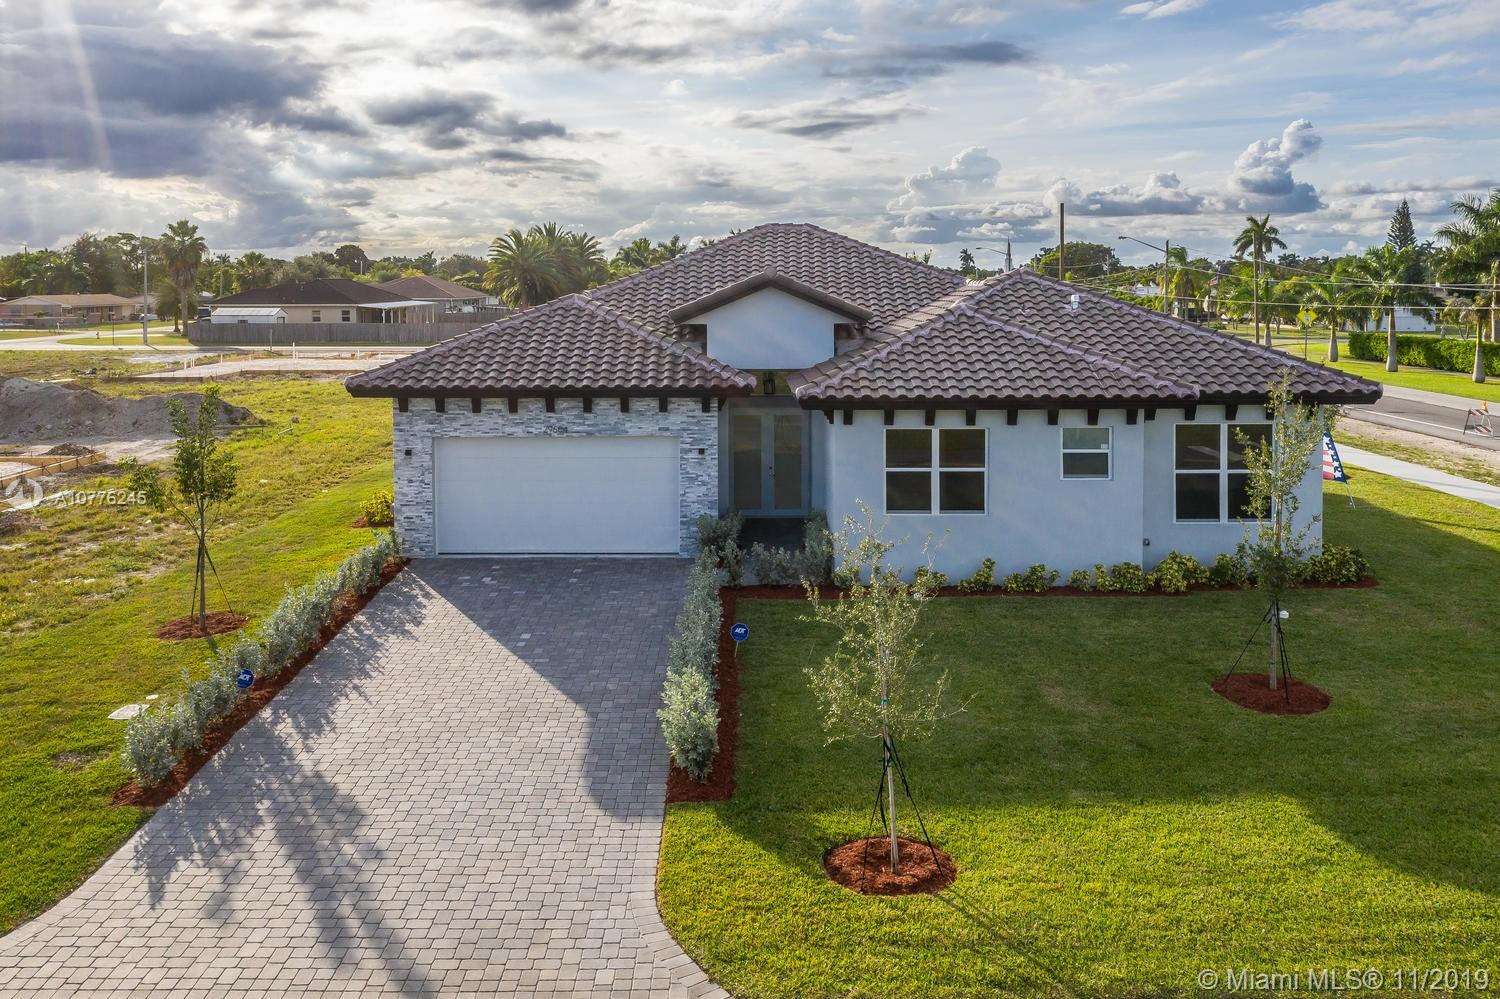 29604 SW 169 AVE, Homestead, FL 33030 - Homestead, FL real estate listing